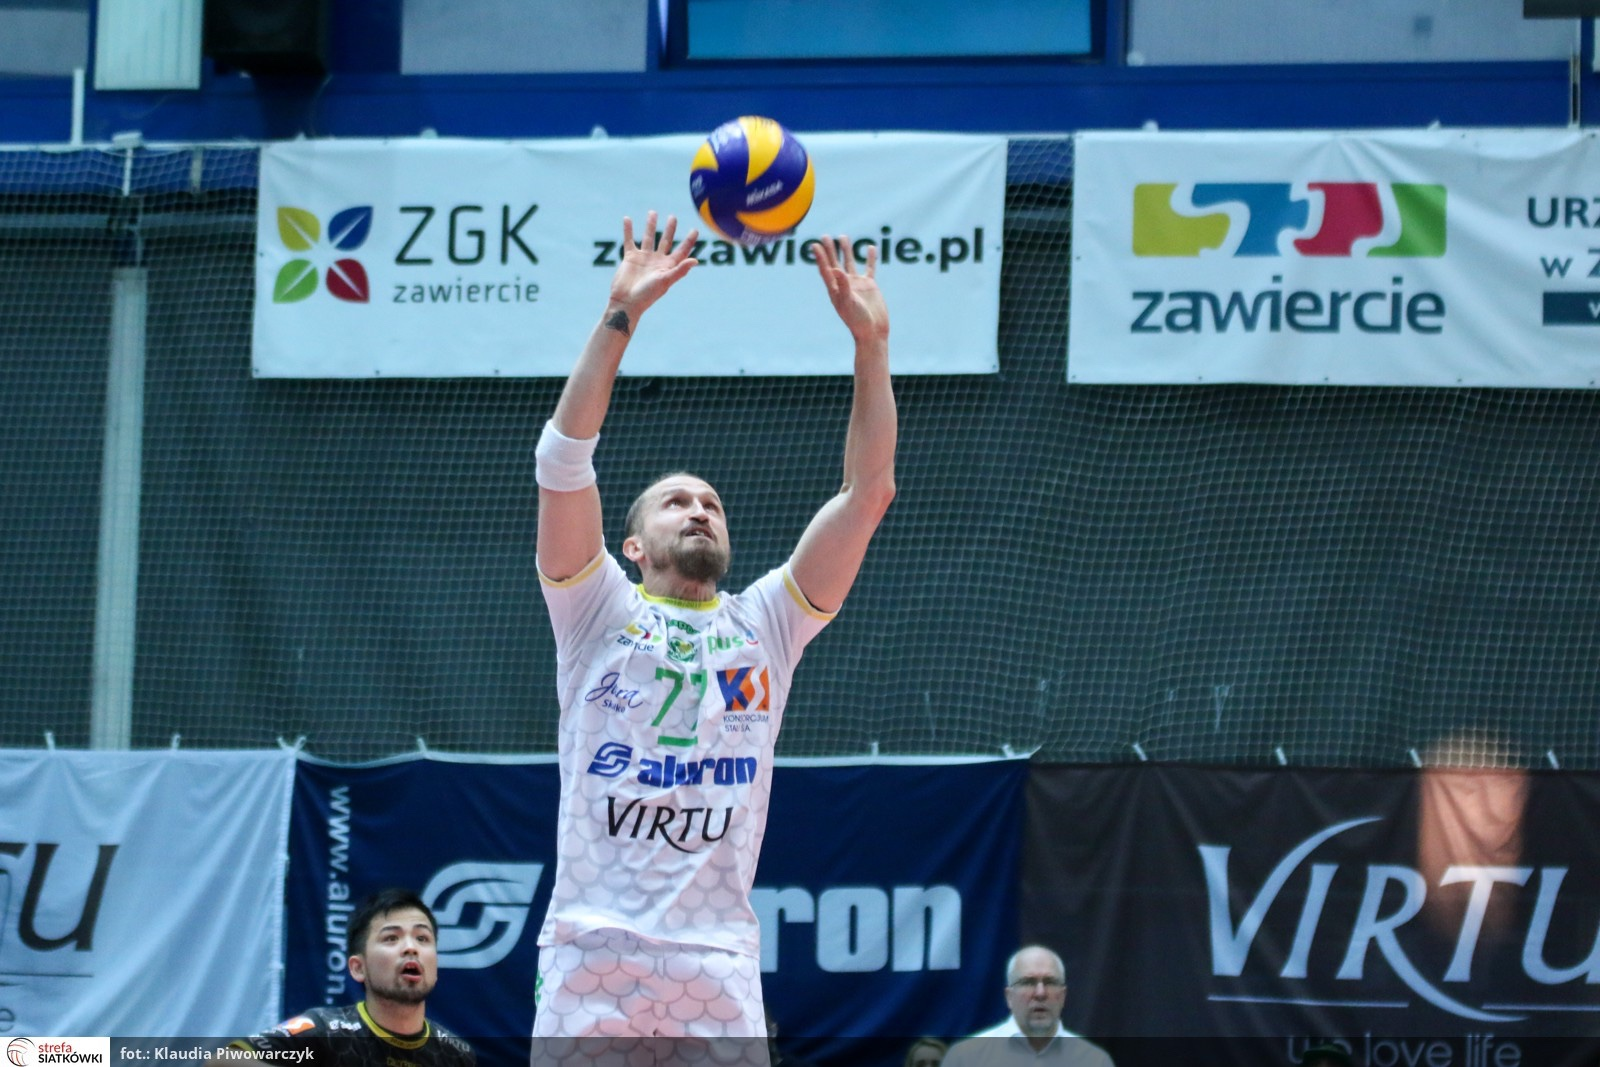 #Transfers: Trade in PlusLiga – Masný returns to Bydgoszcz, Lipiński to Aluron